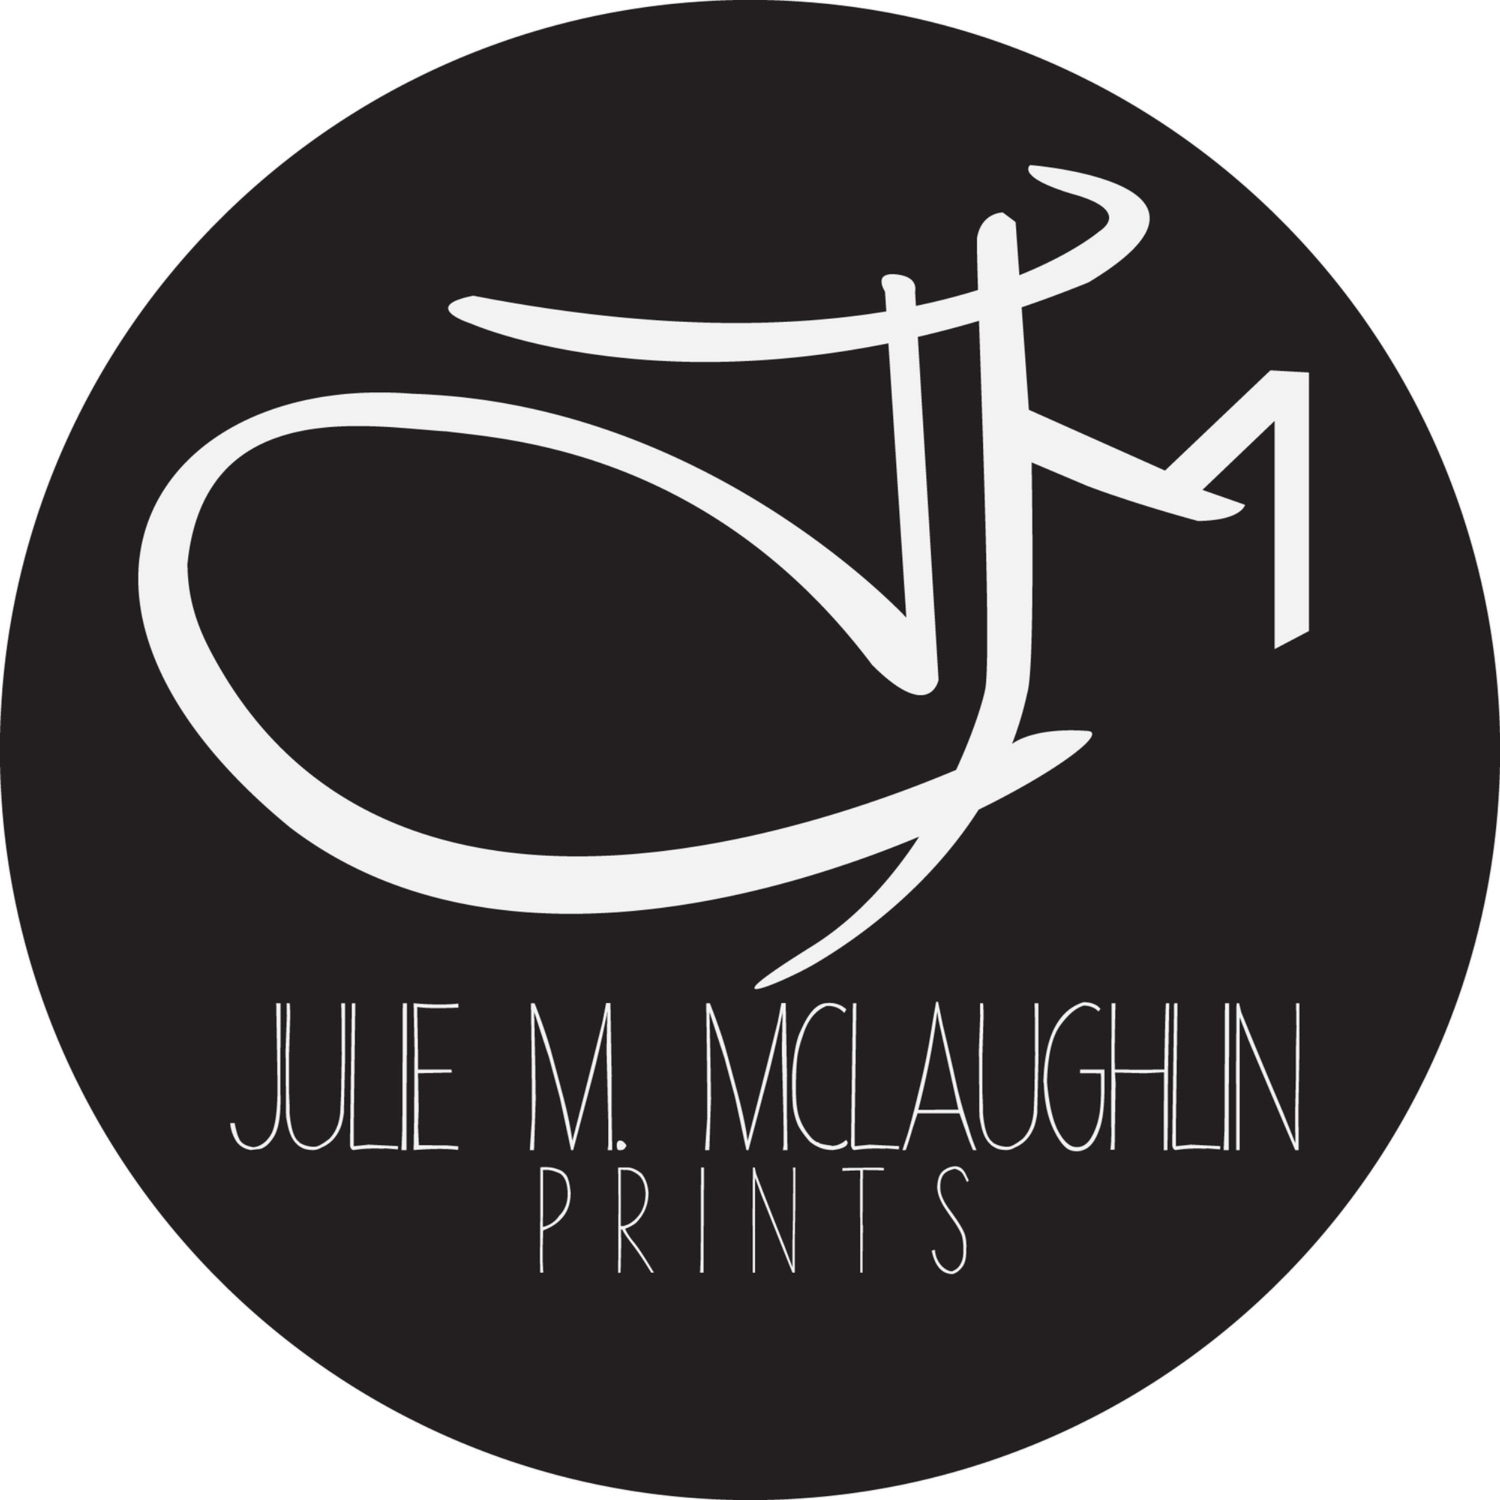 Julie M. McLaughlin Prints